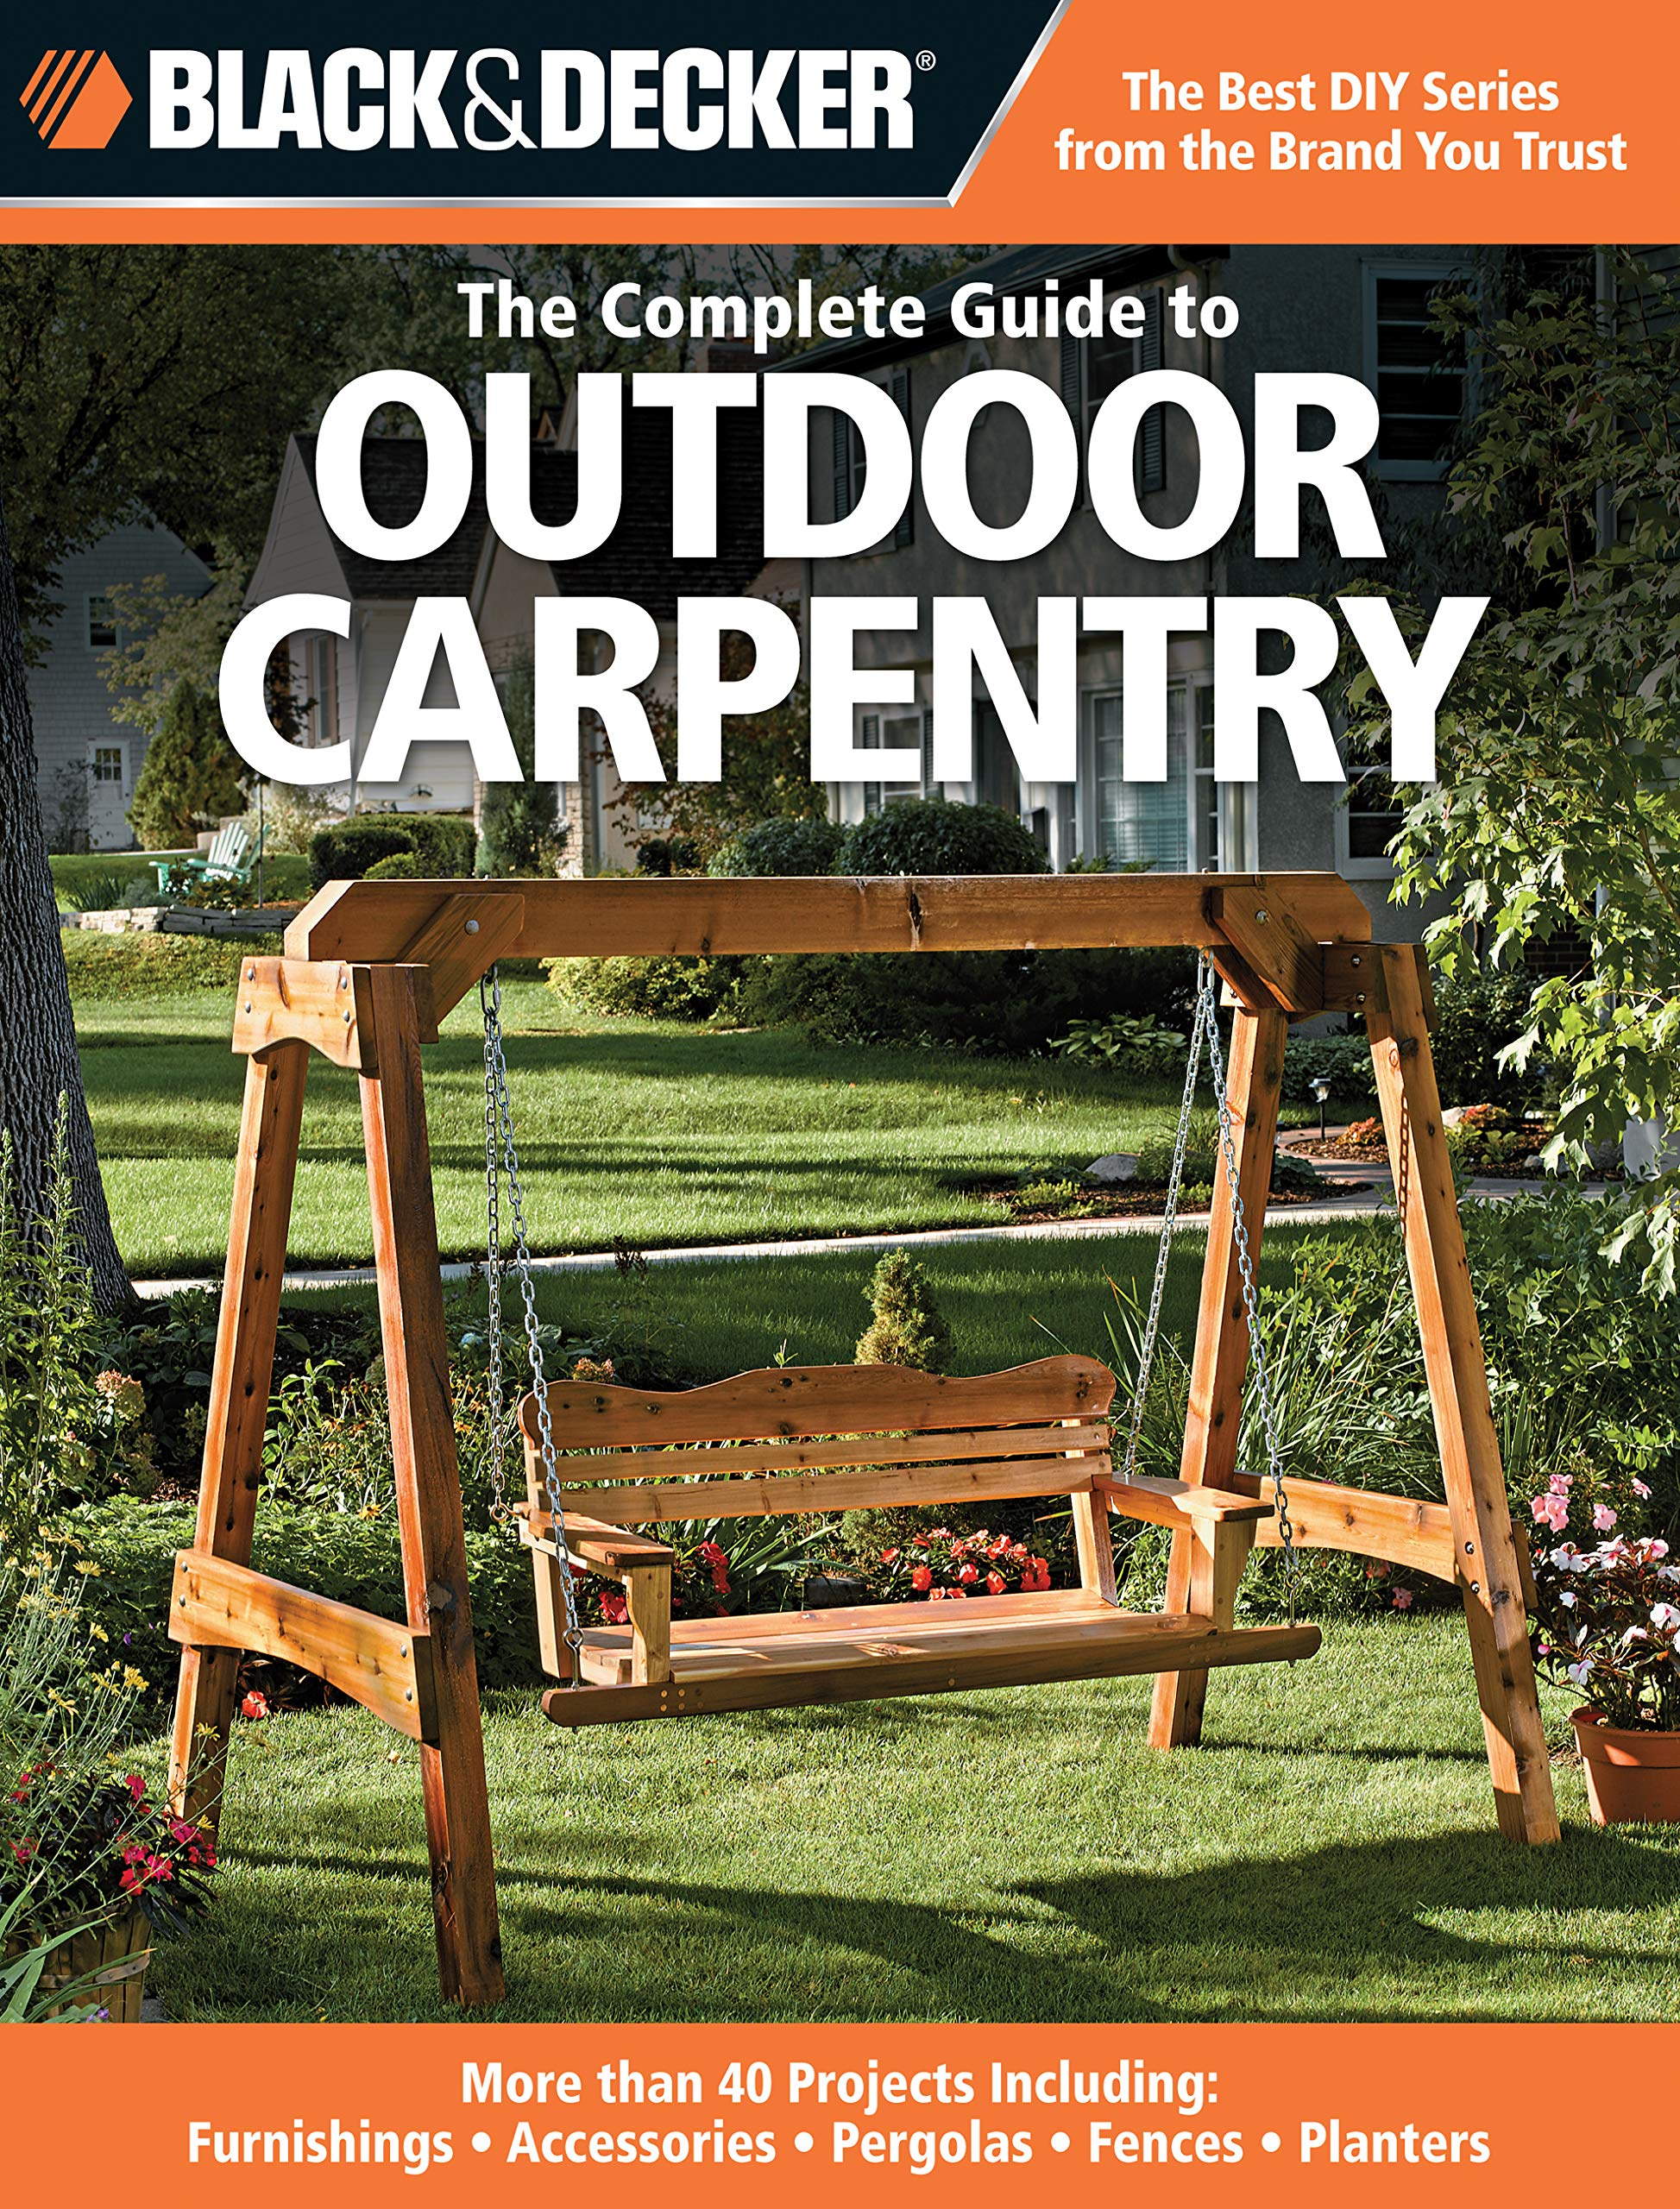 The Complete Guide to Outdoor Carpentry Black & Decker : More Than 40 Projects Including: Furnishings - Accessories - Pergolas - Fences - Planters: Amazon.es: Publishing, Editors of Creative: Libros en idiomas extranjeros